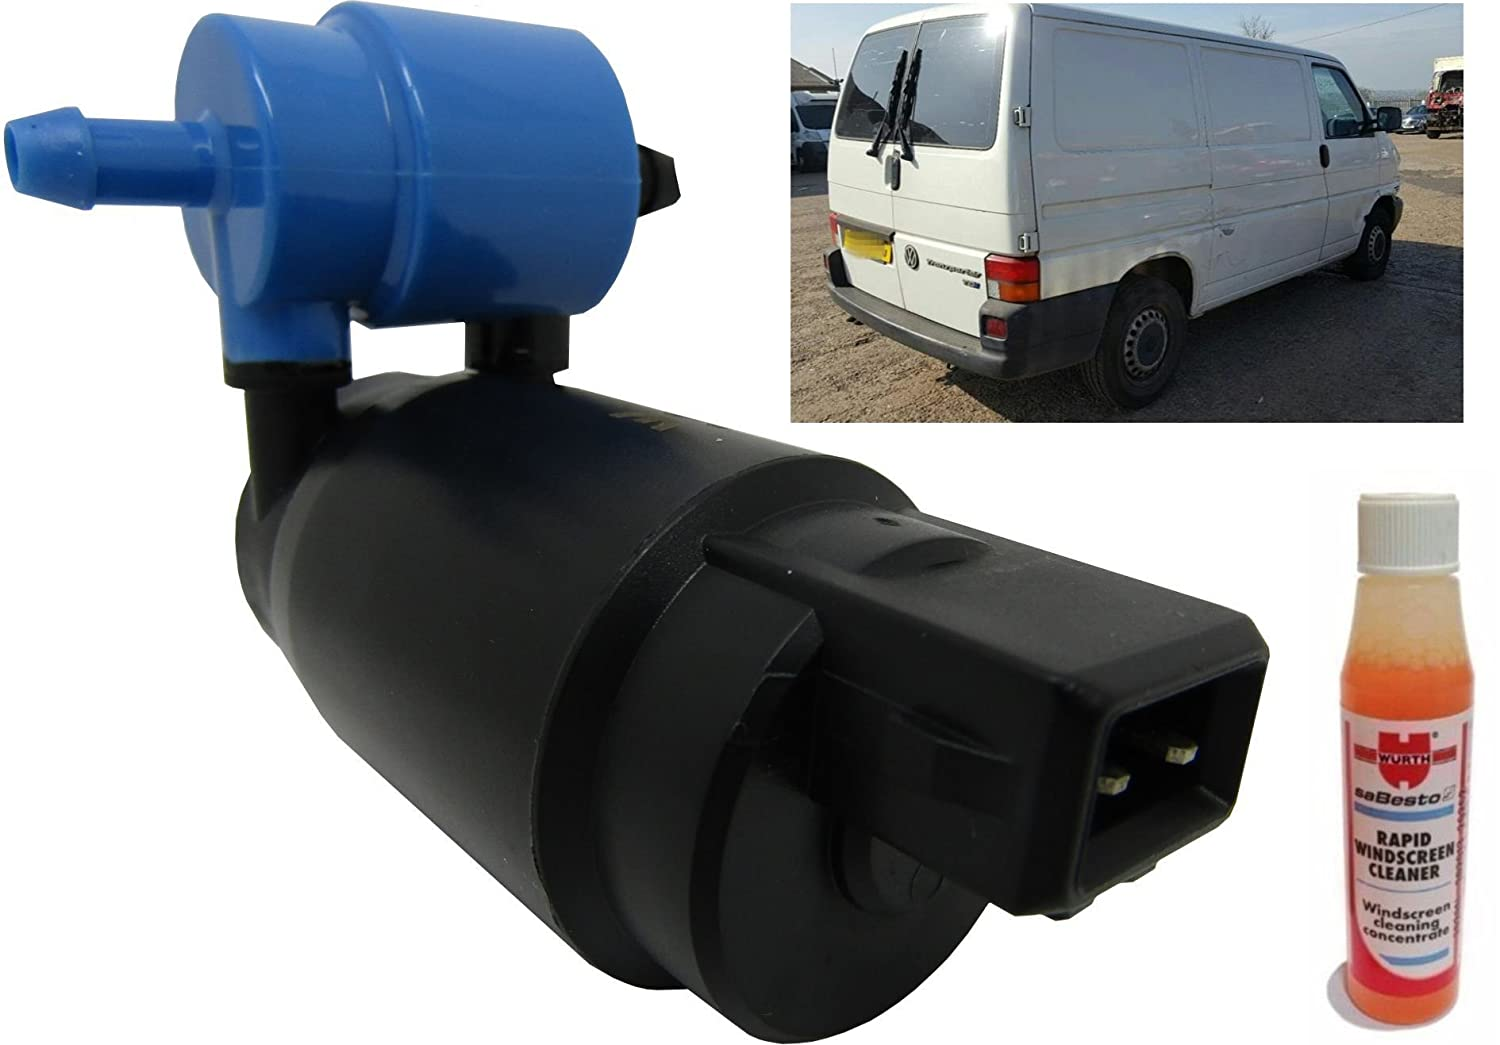 Rear Windscreen Washer Pump Transporter T4 Caravelle Rear wiper Screen Wash XtremeAuto/® Front